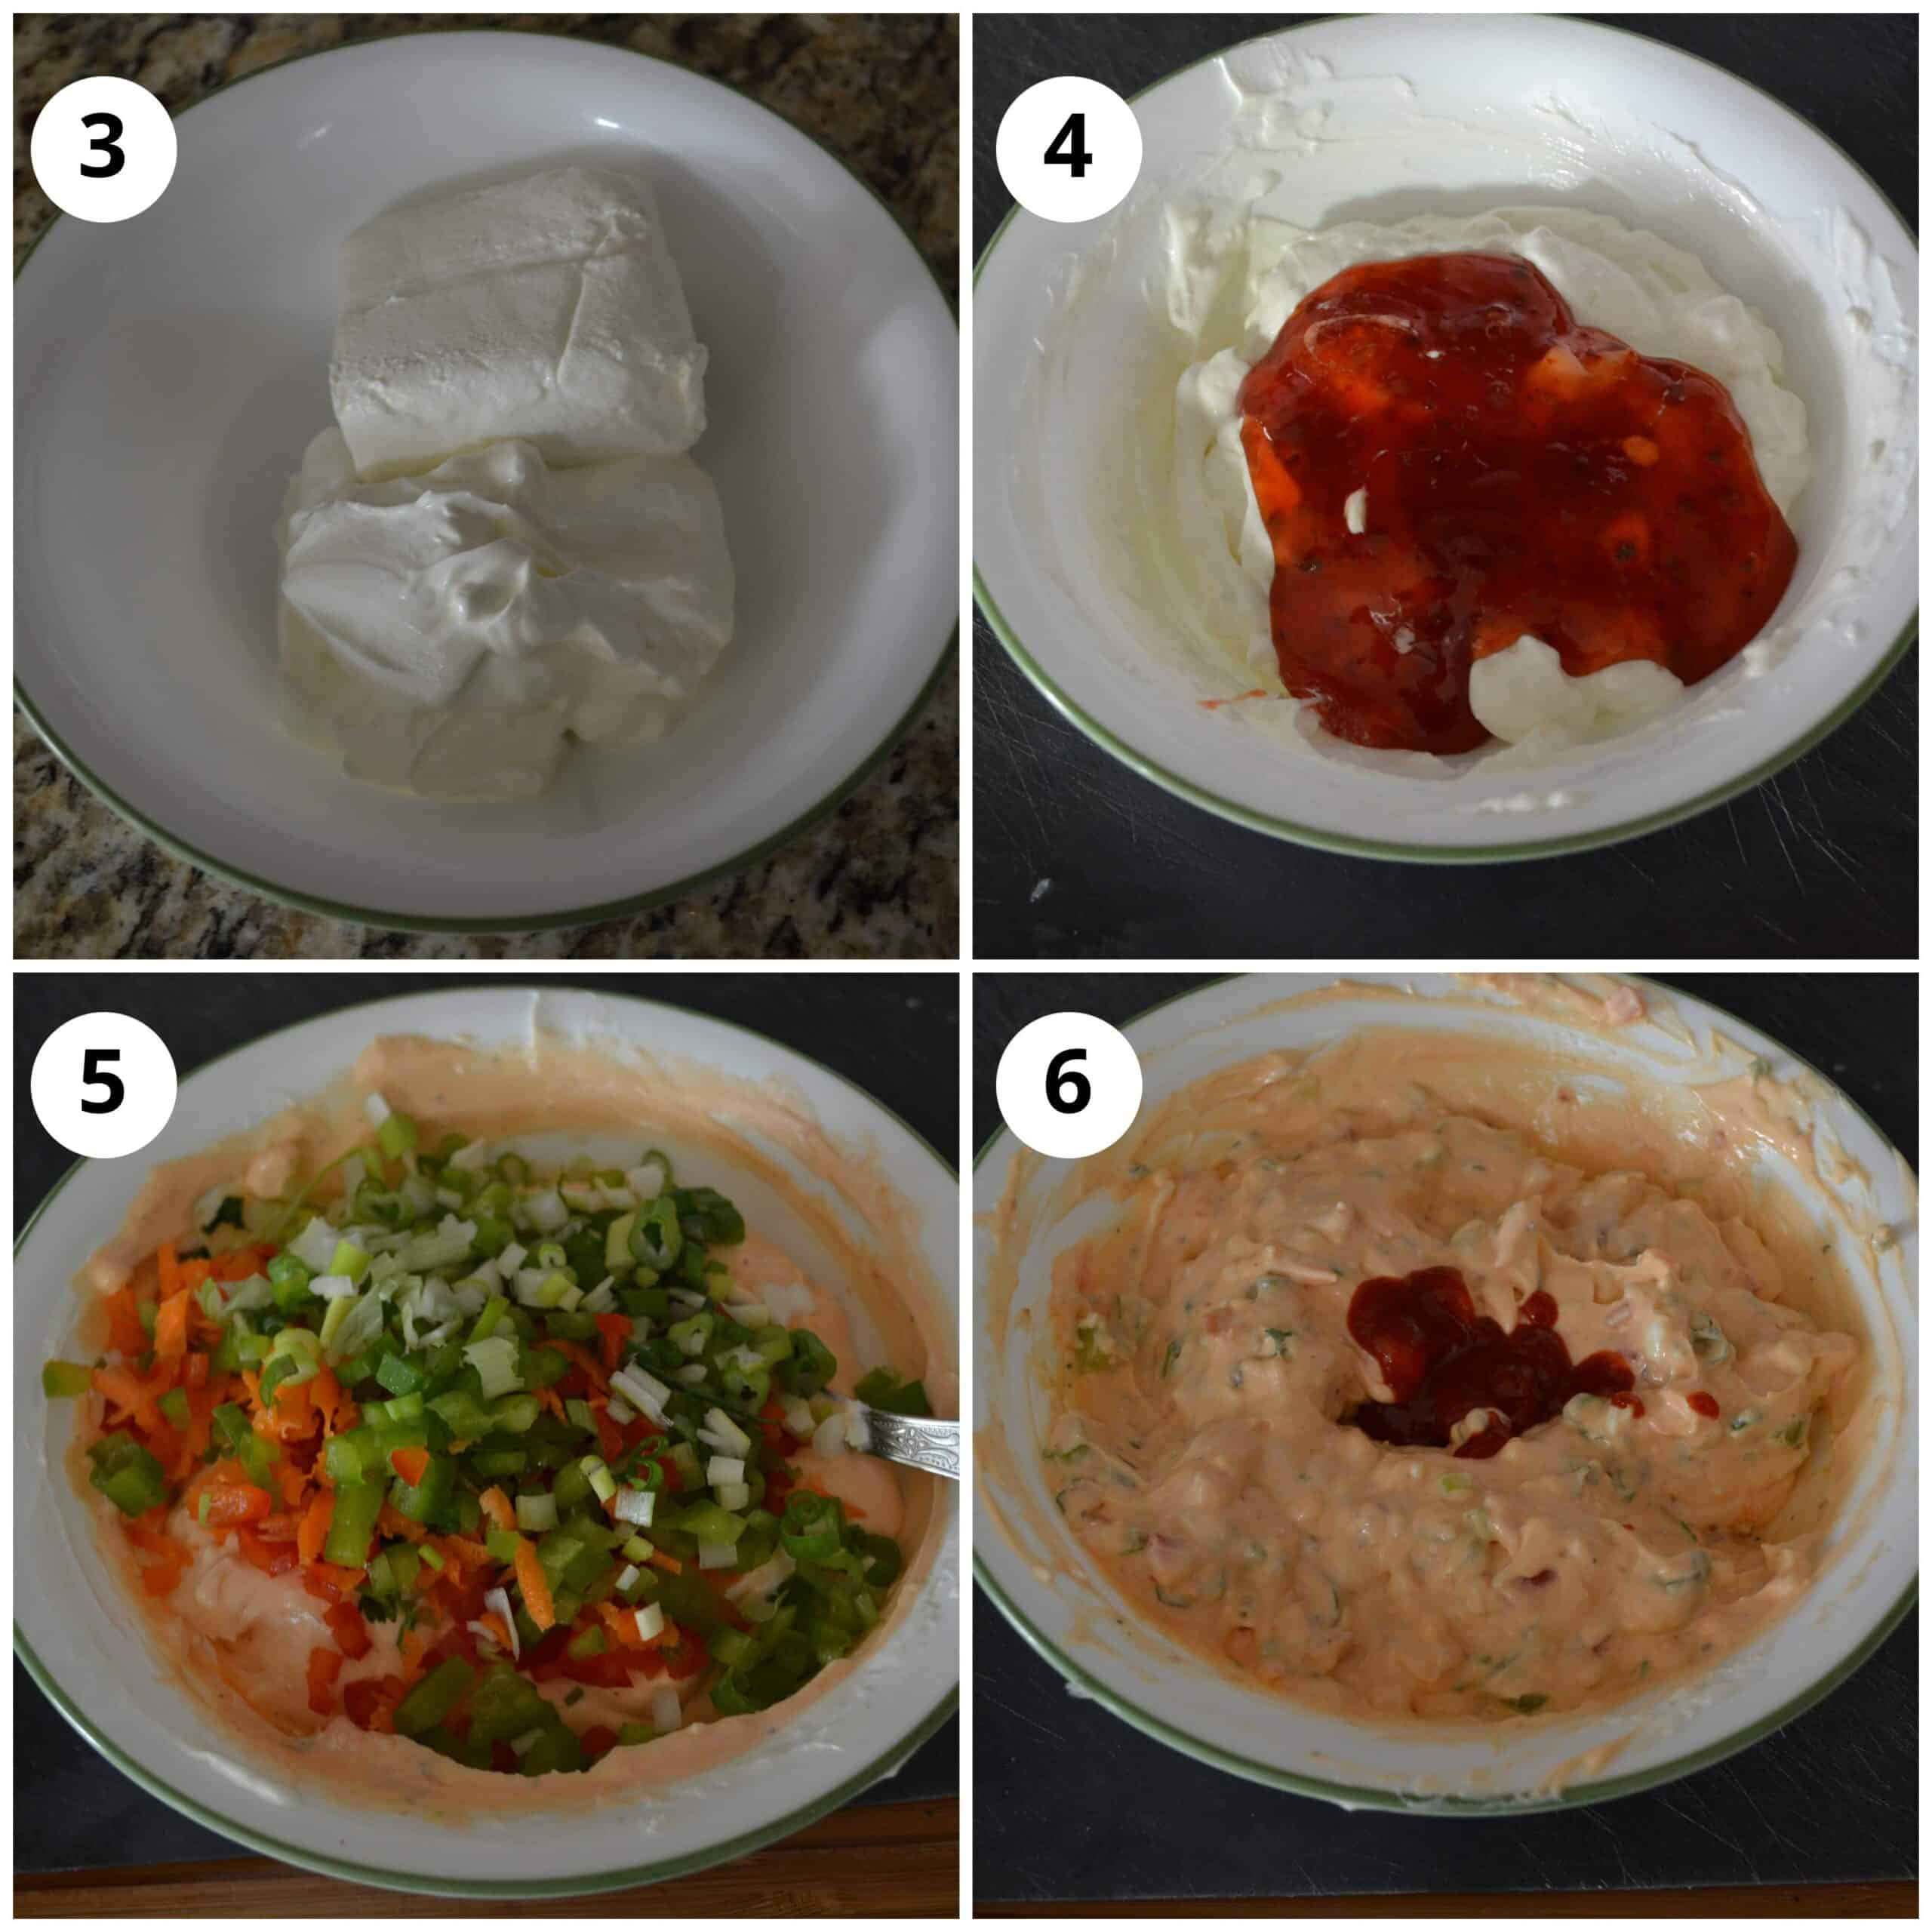 Step by step photos to show how to make the dip